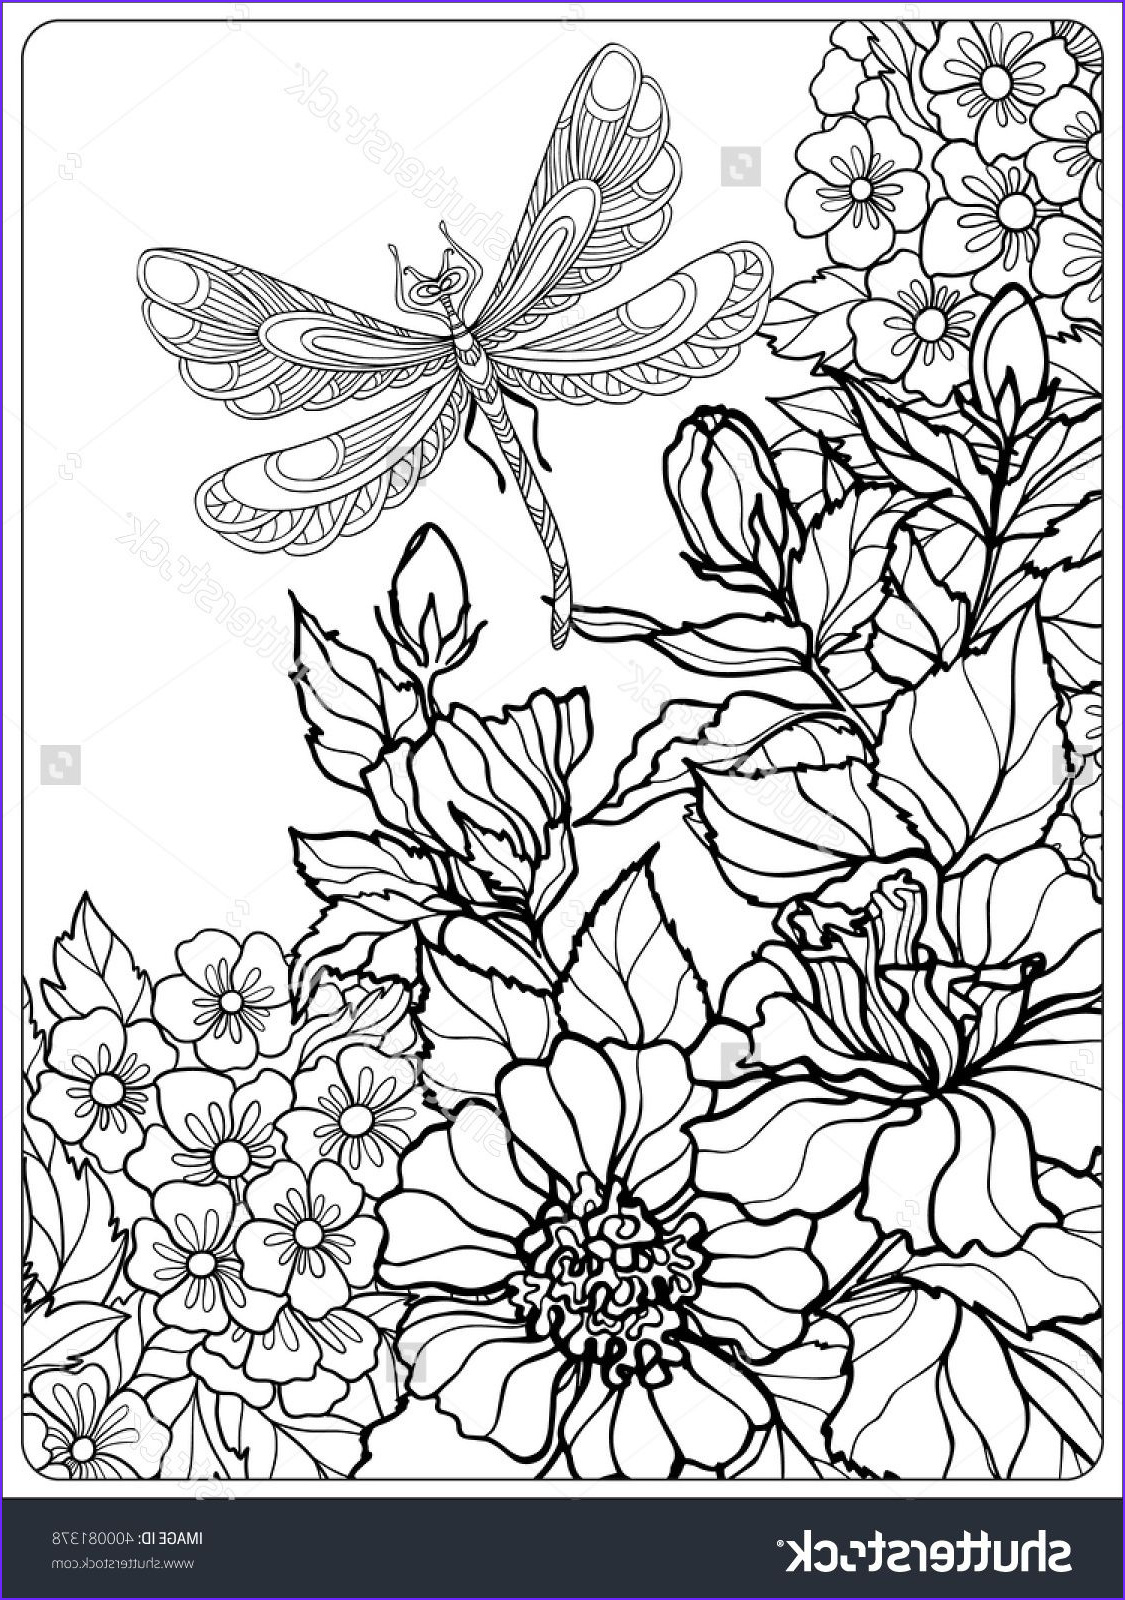 Coloring Pictures Of Flowers and butterflies New Photos Decorative Flowers Birds and butterflies Coloring Book